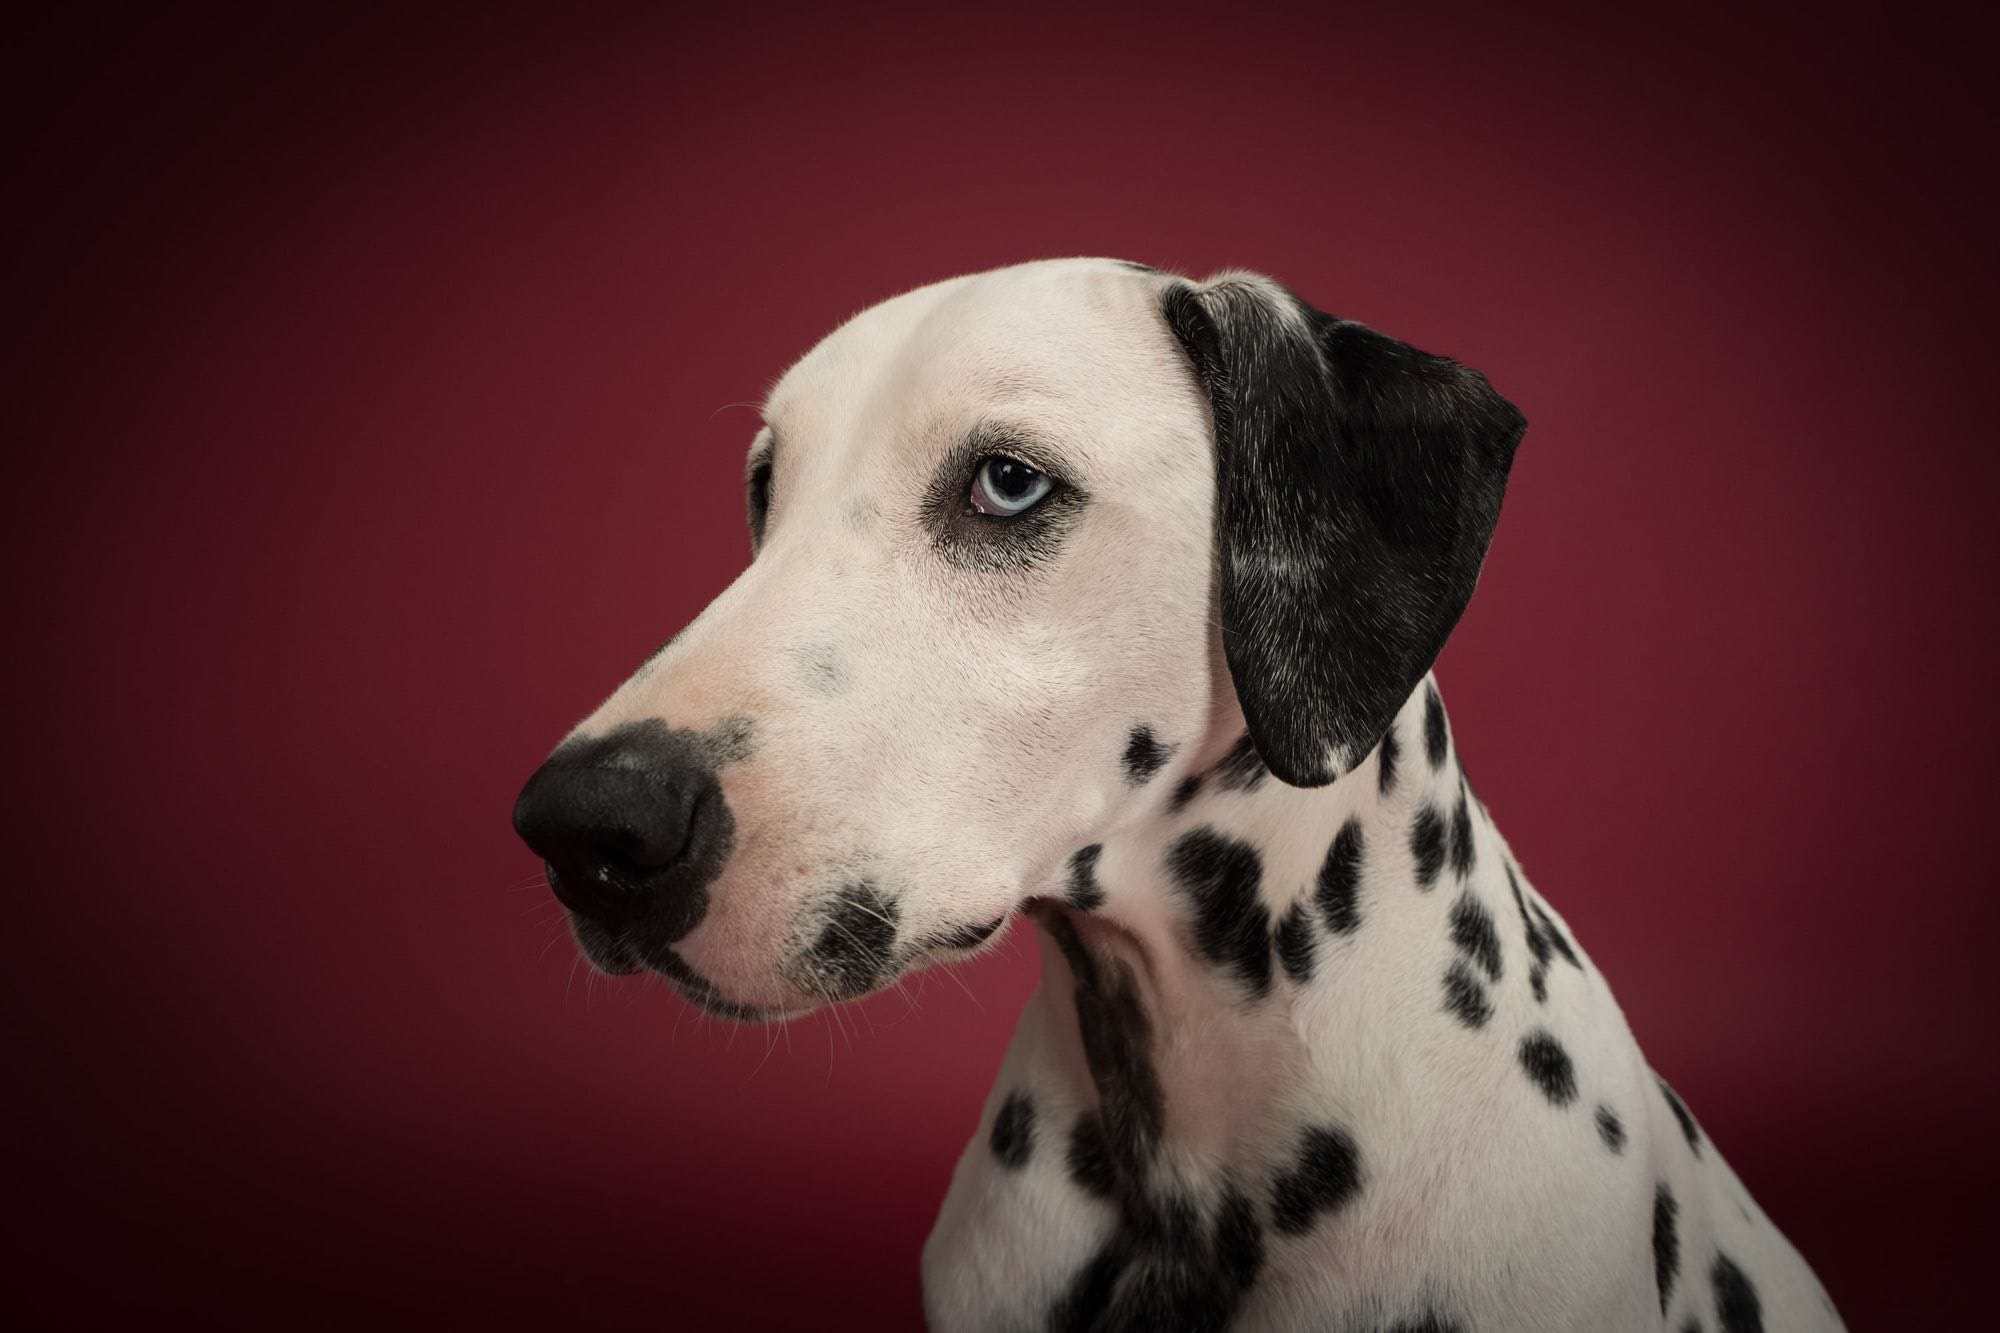 Charlie the Dalmatian in profile